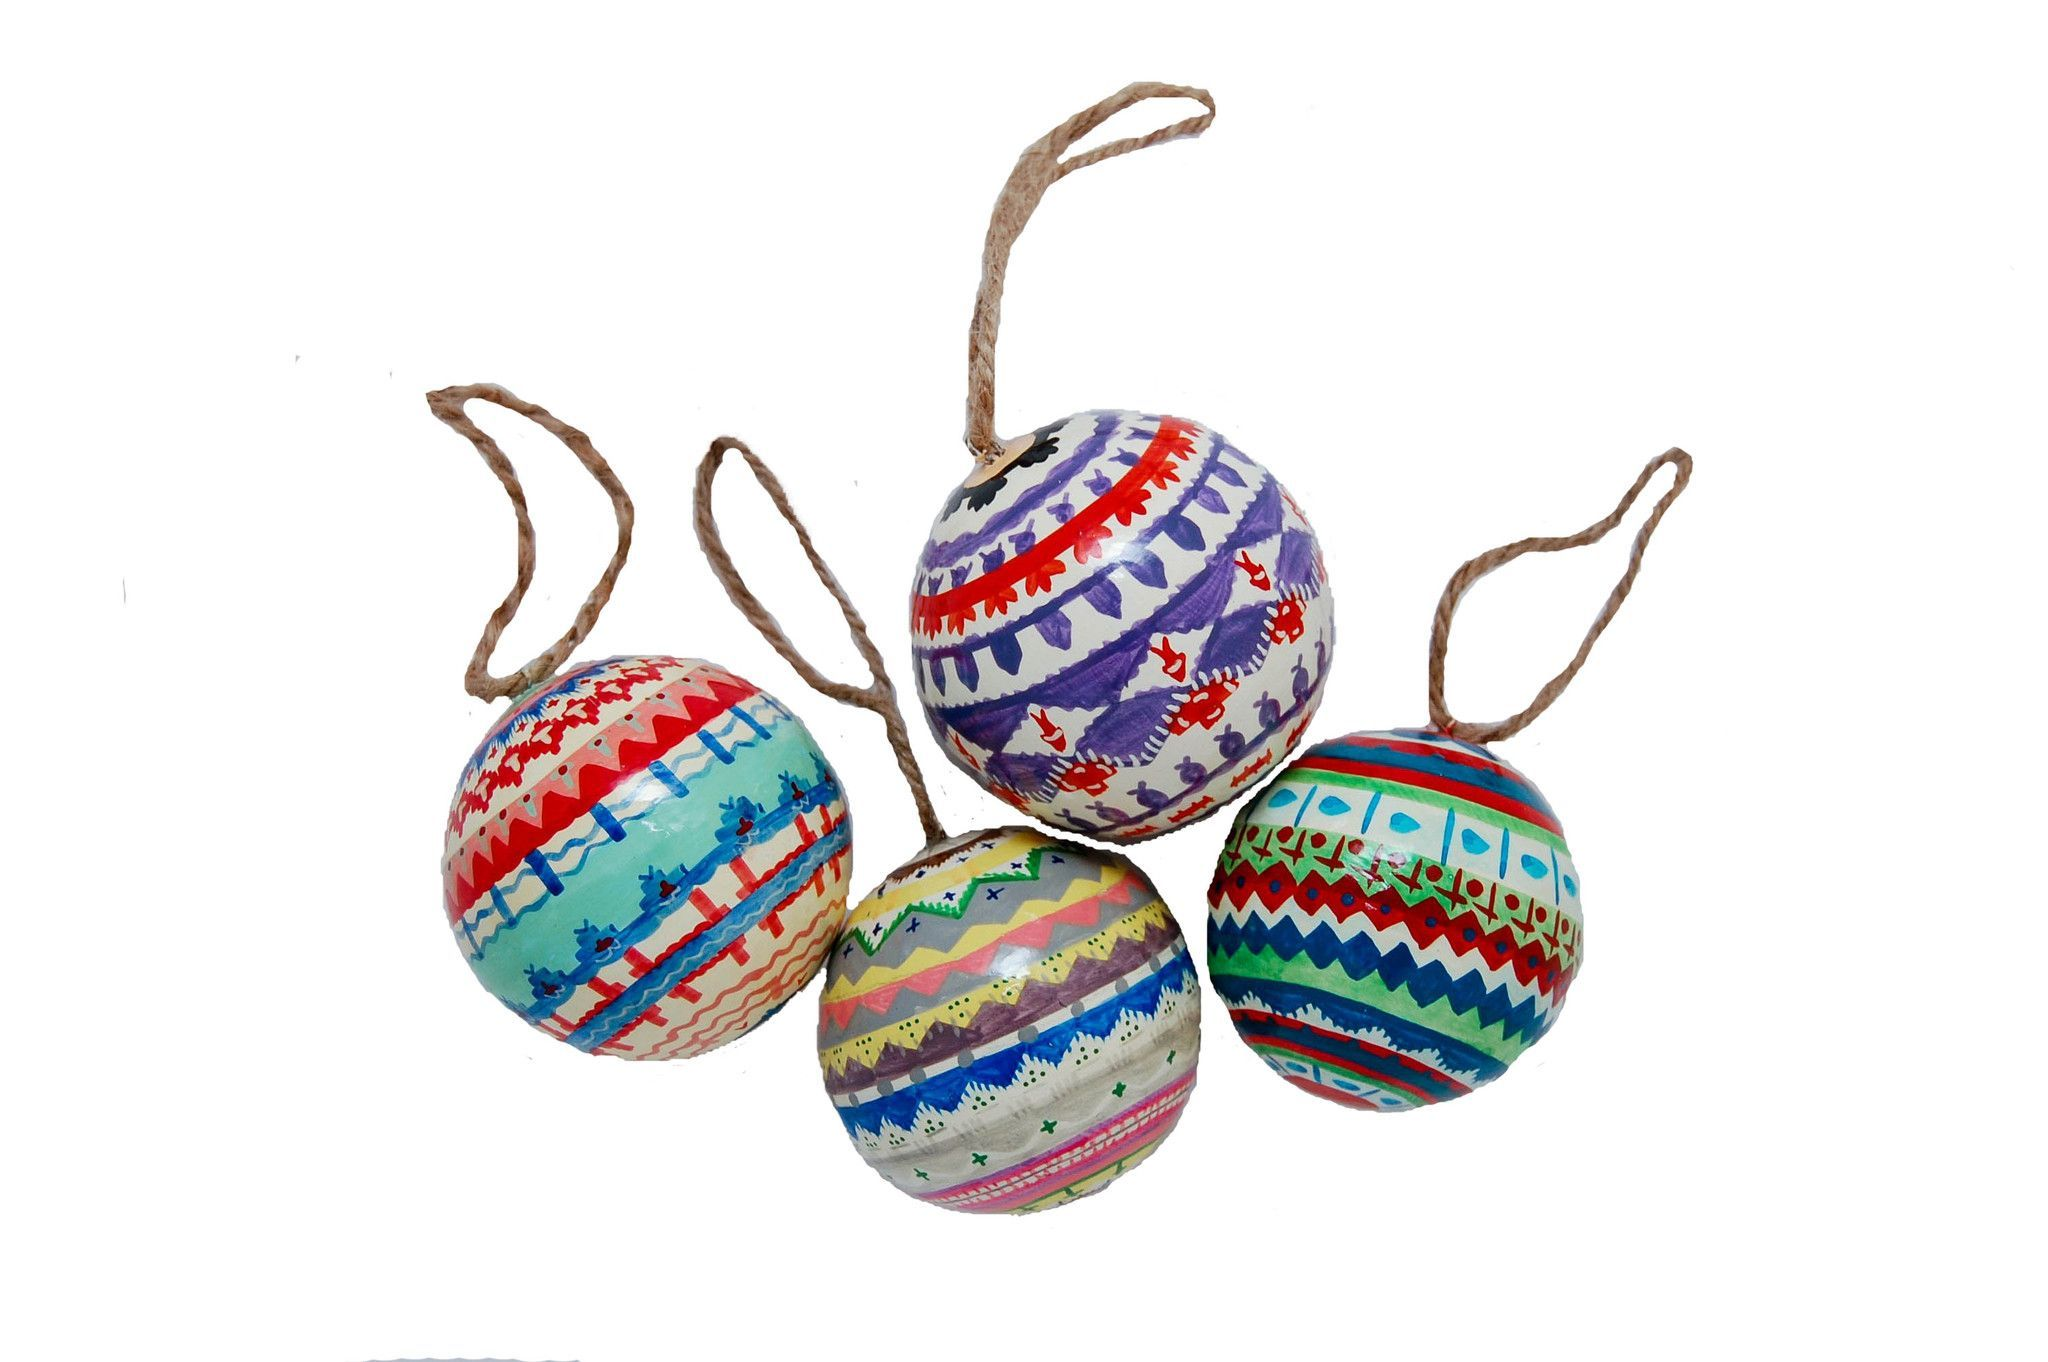 Patterned Winter Ornaments